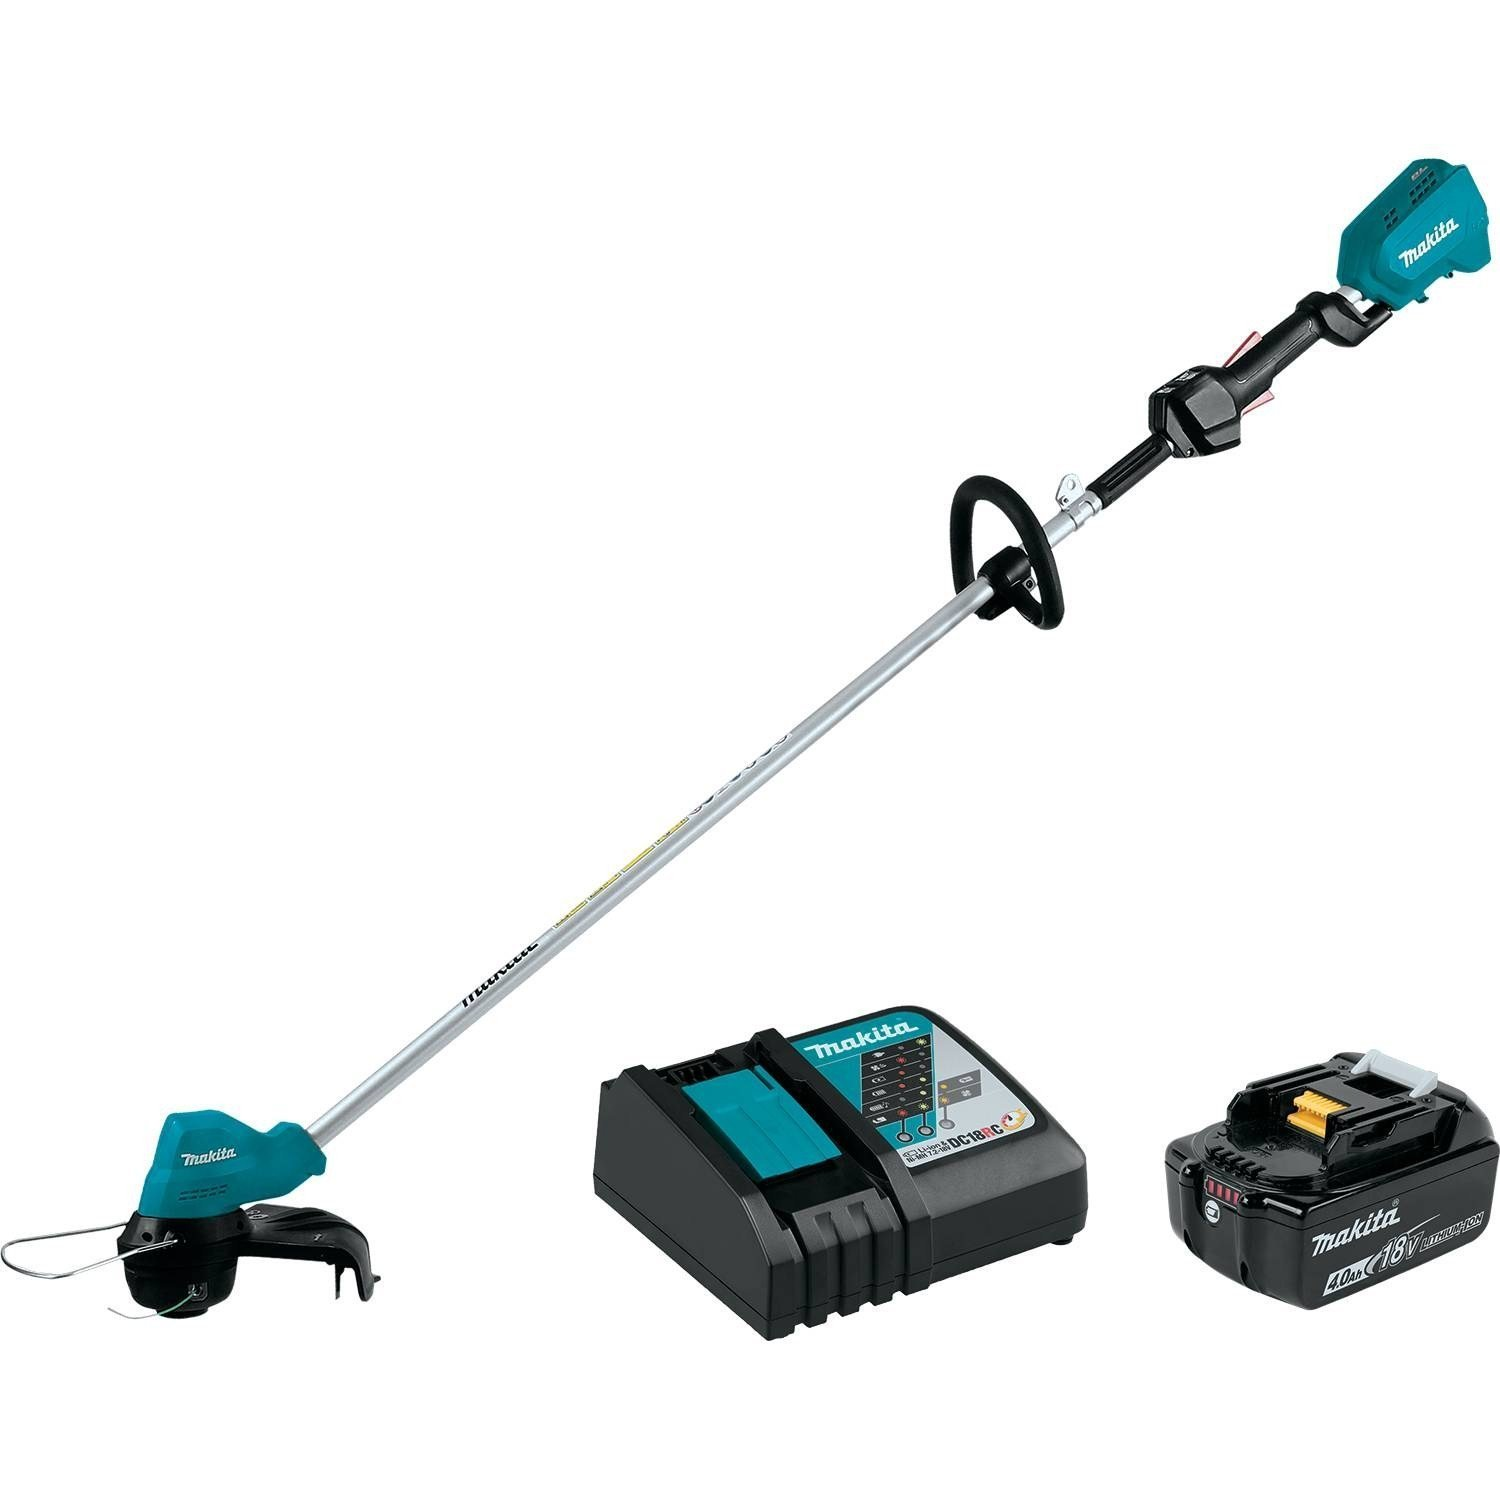 Makita XRU11M1 18V LXT Lithium-Ion Brushless Cordless String Trimmer